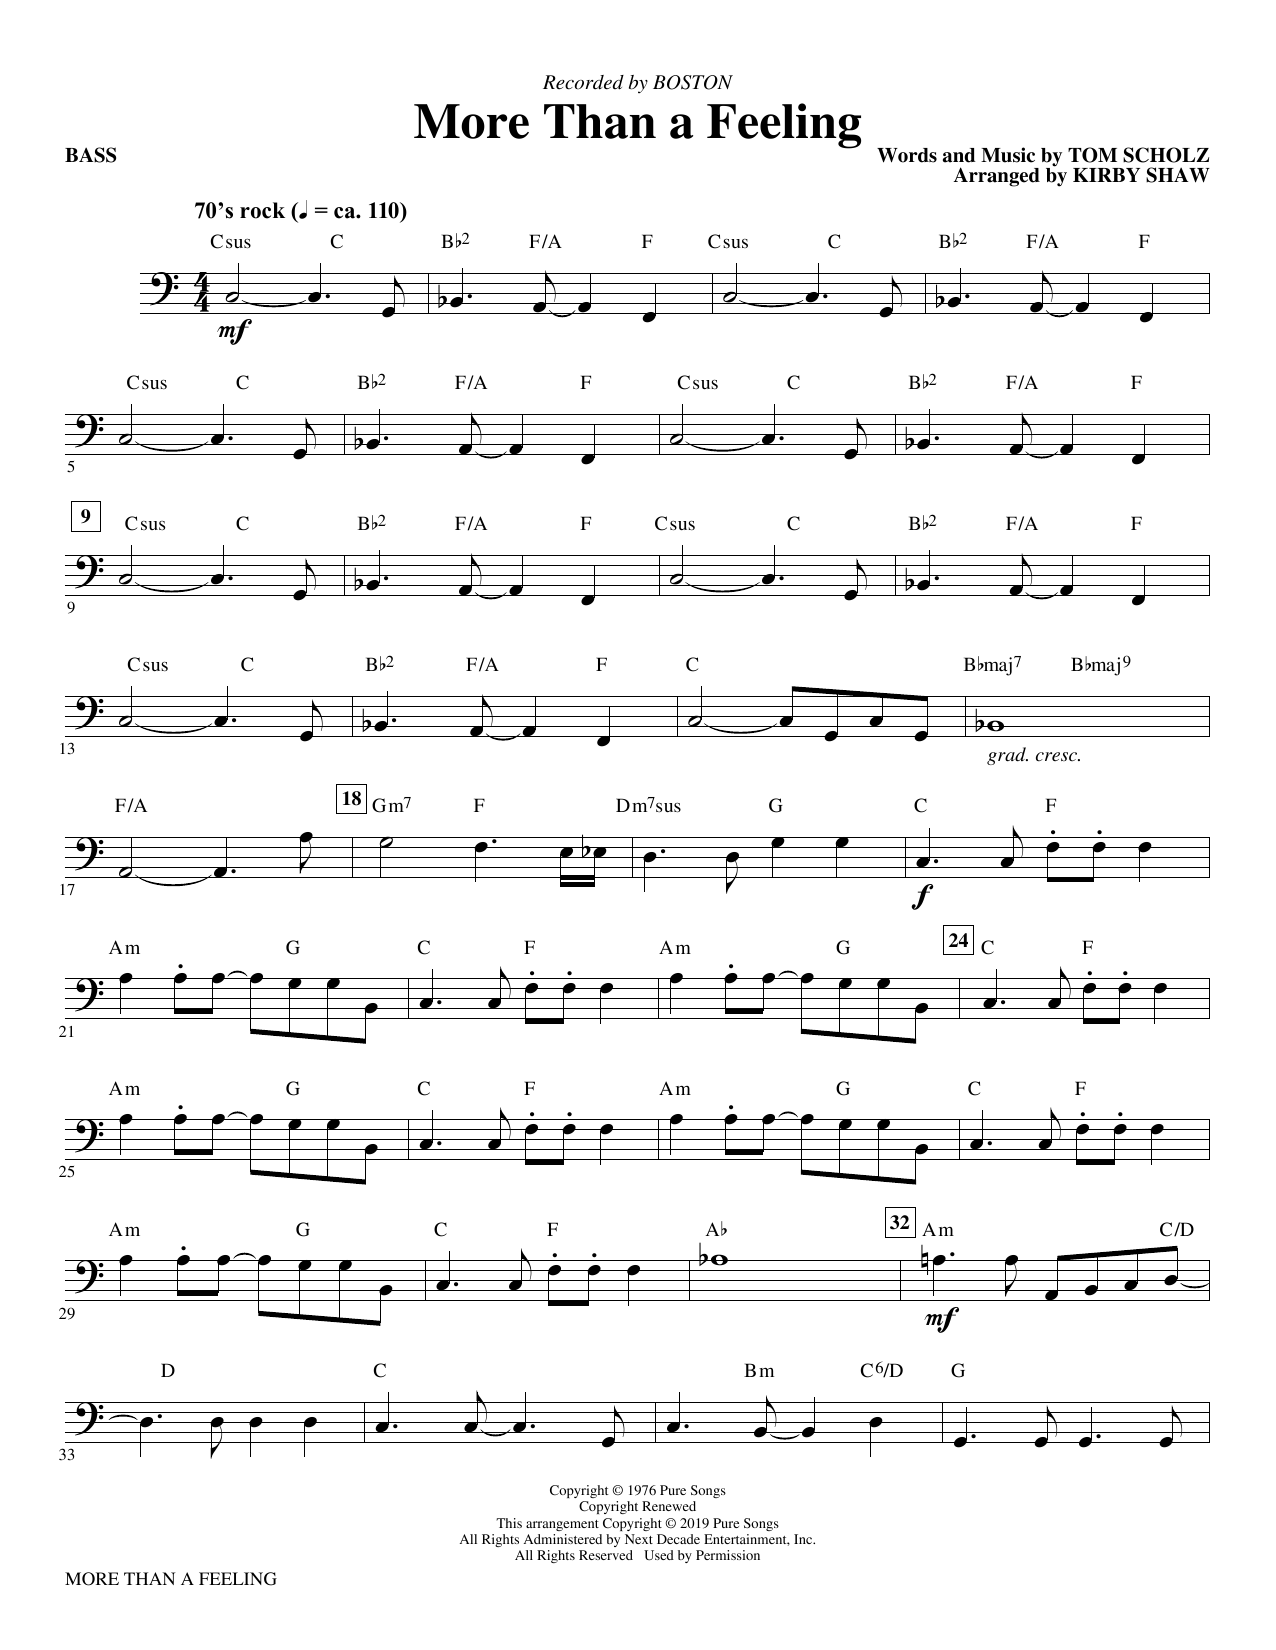 Boston More Than a Feeling (arr. Kirby Shaw) - Bass sheet music notes and chords. Download Printable PDF.